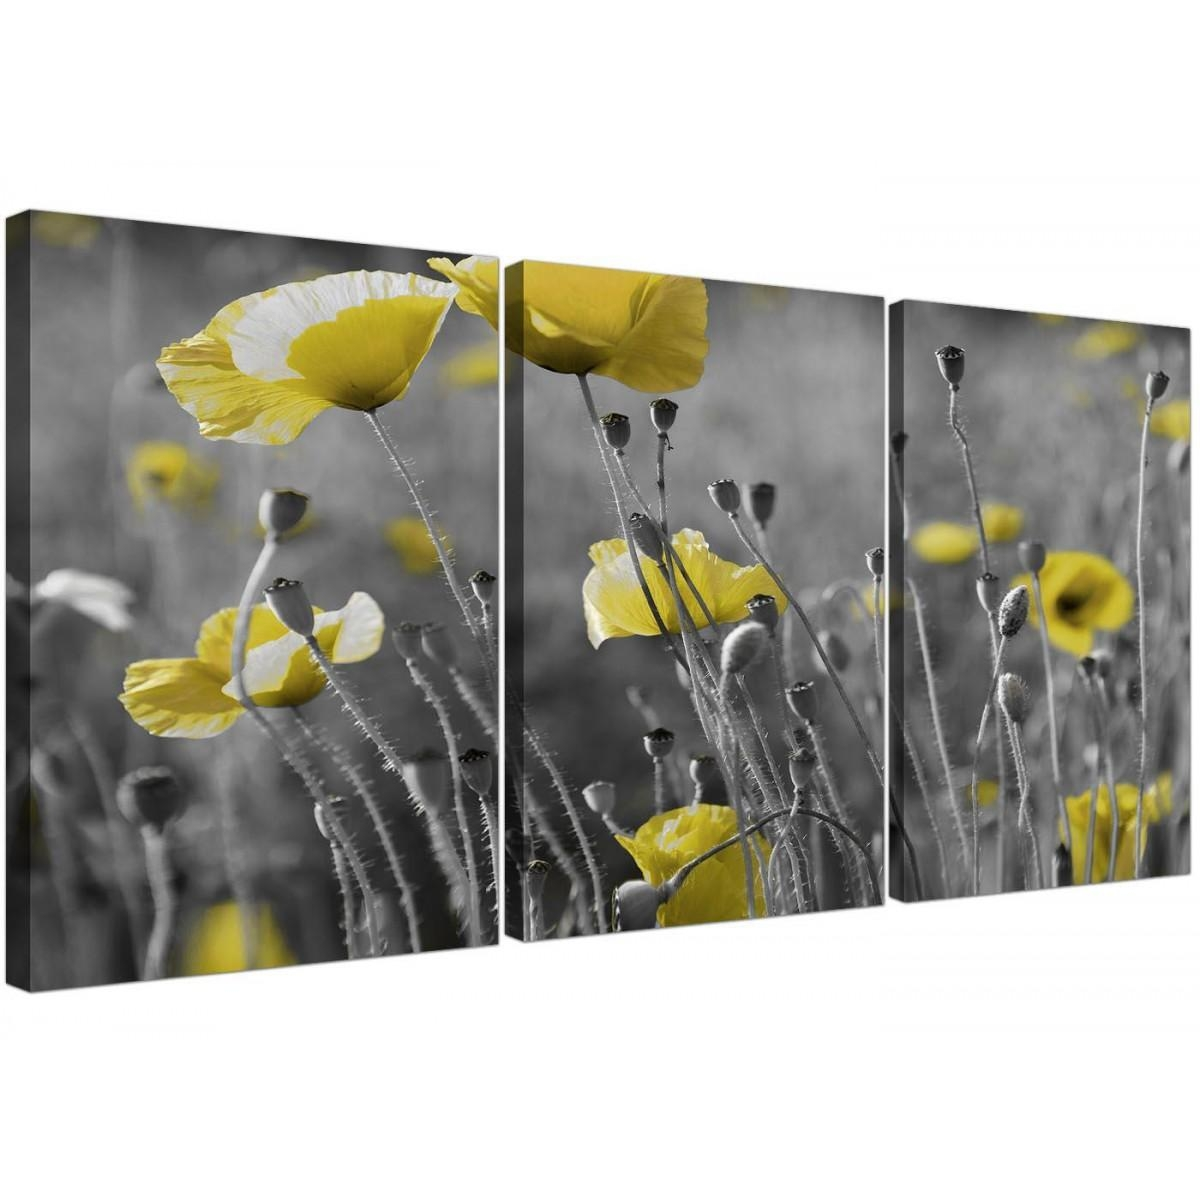 20 Top Yellow Grey Wall Art Wall Art Ideas